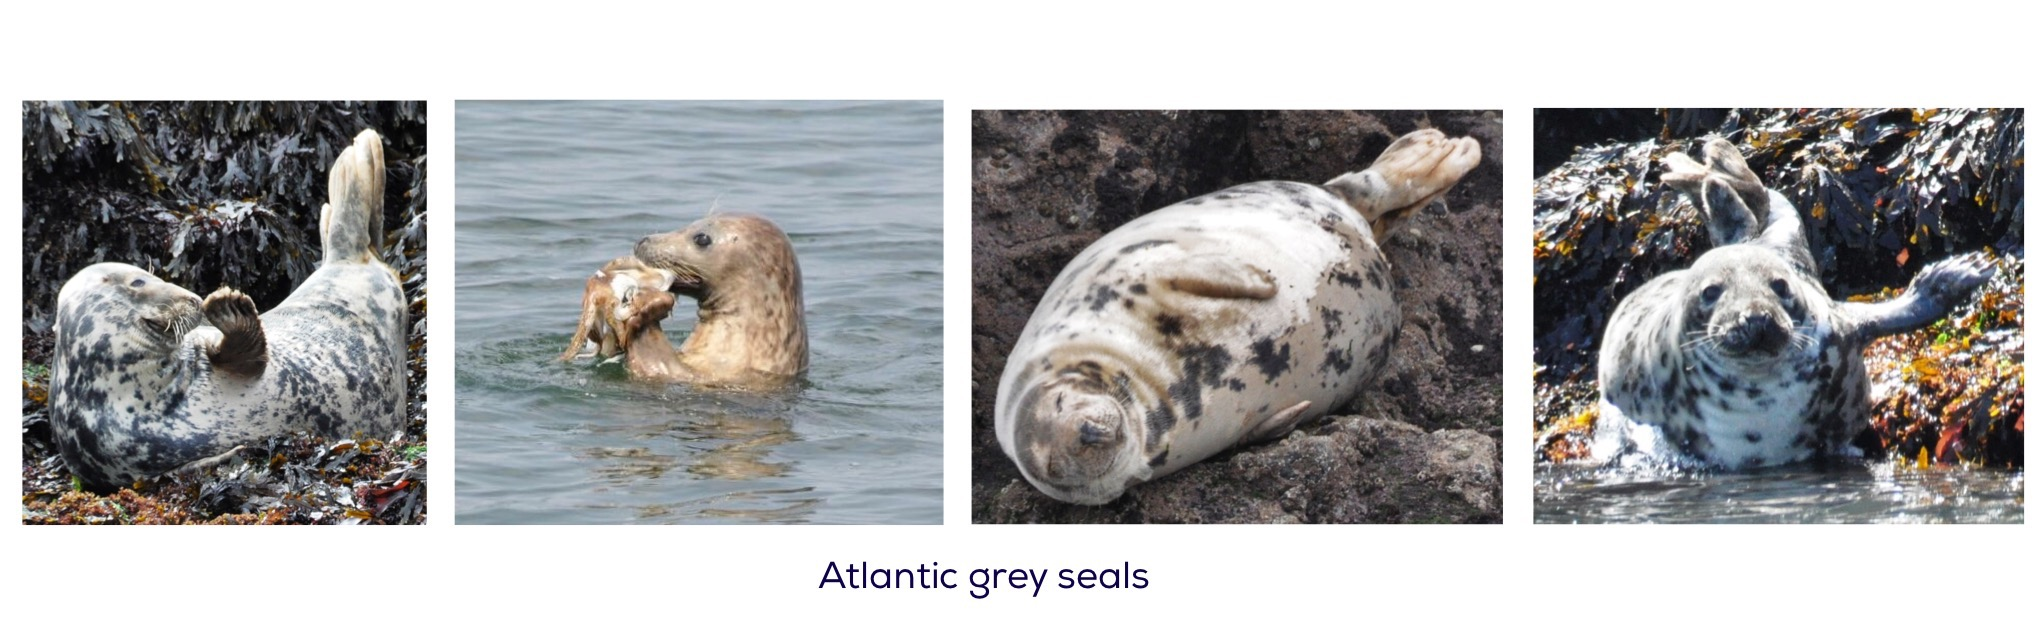 Atlantic grey seals at Worms Head, Gower, Wales